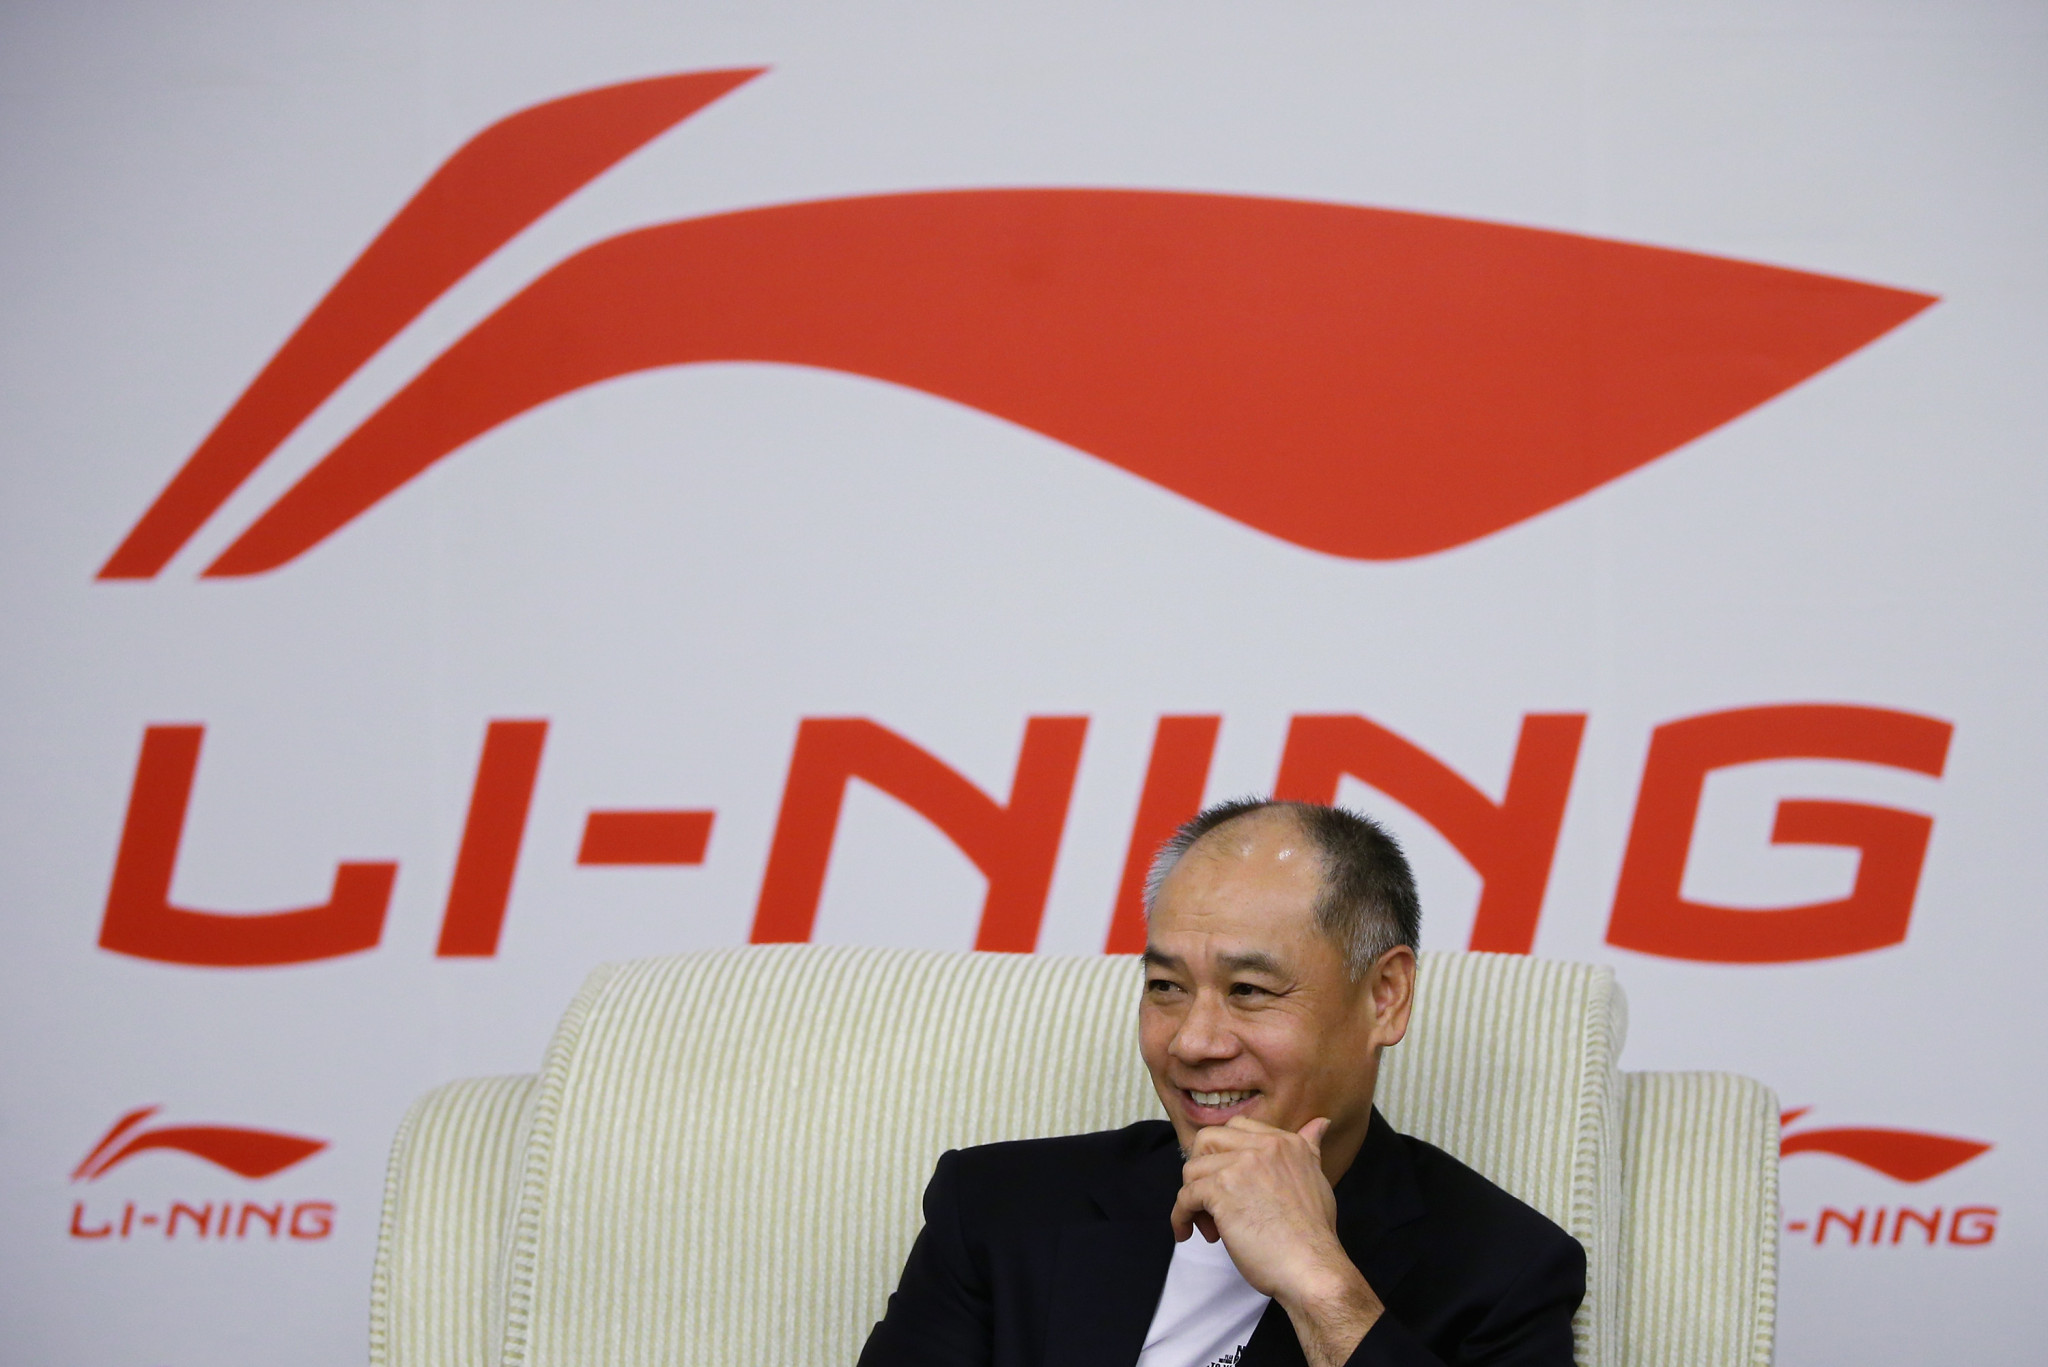 Li Ning - the moonwalker of Bird's Nest stadium - turns SPAC invader with $250 million investment plan